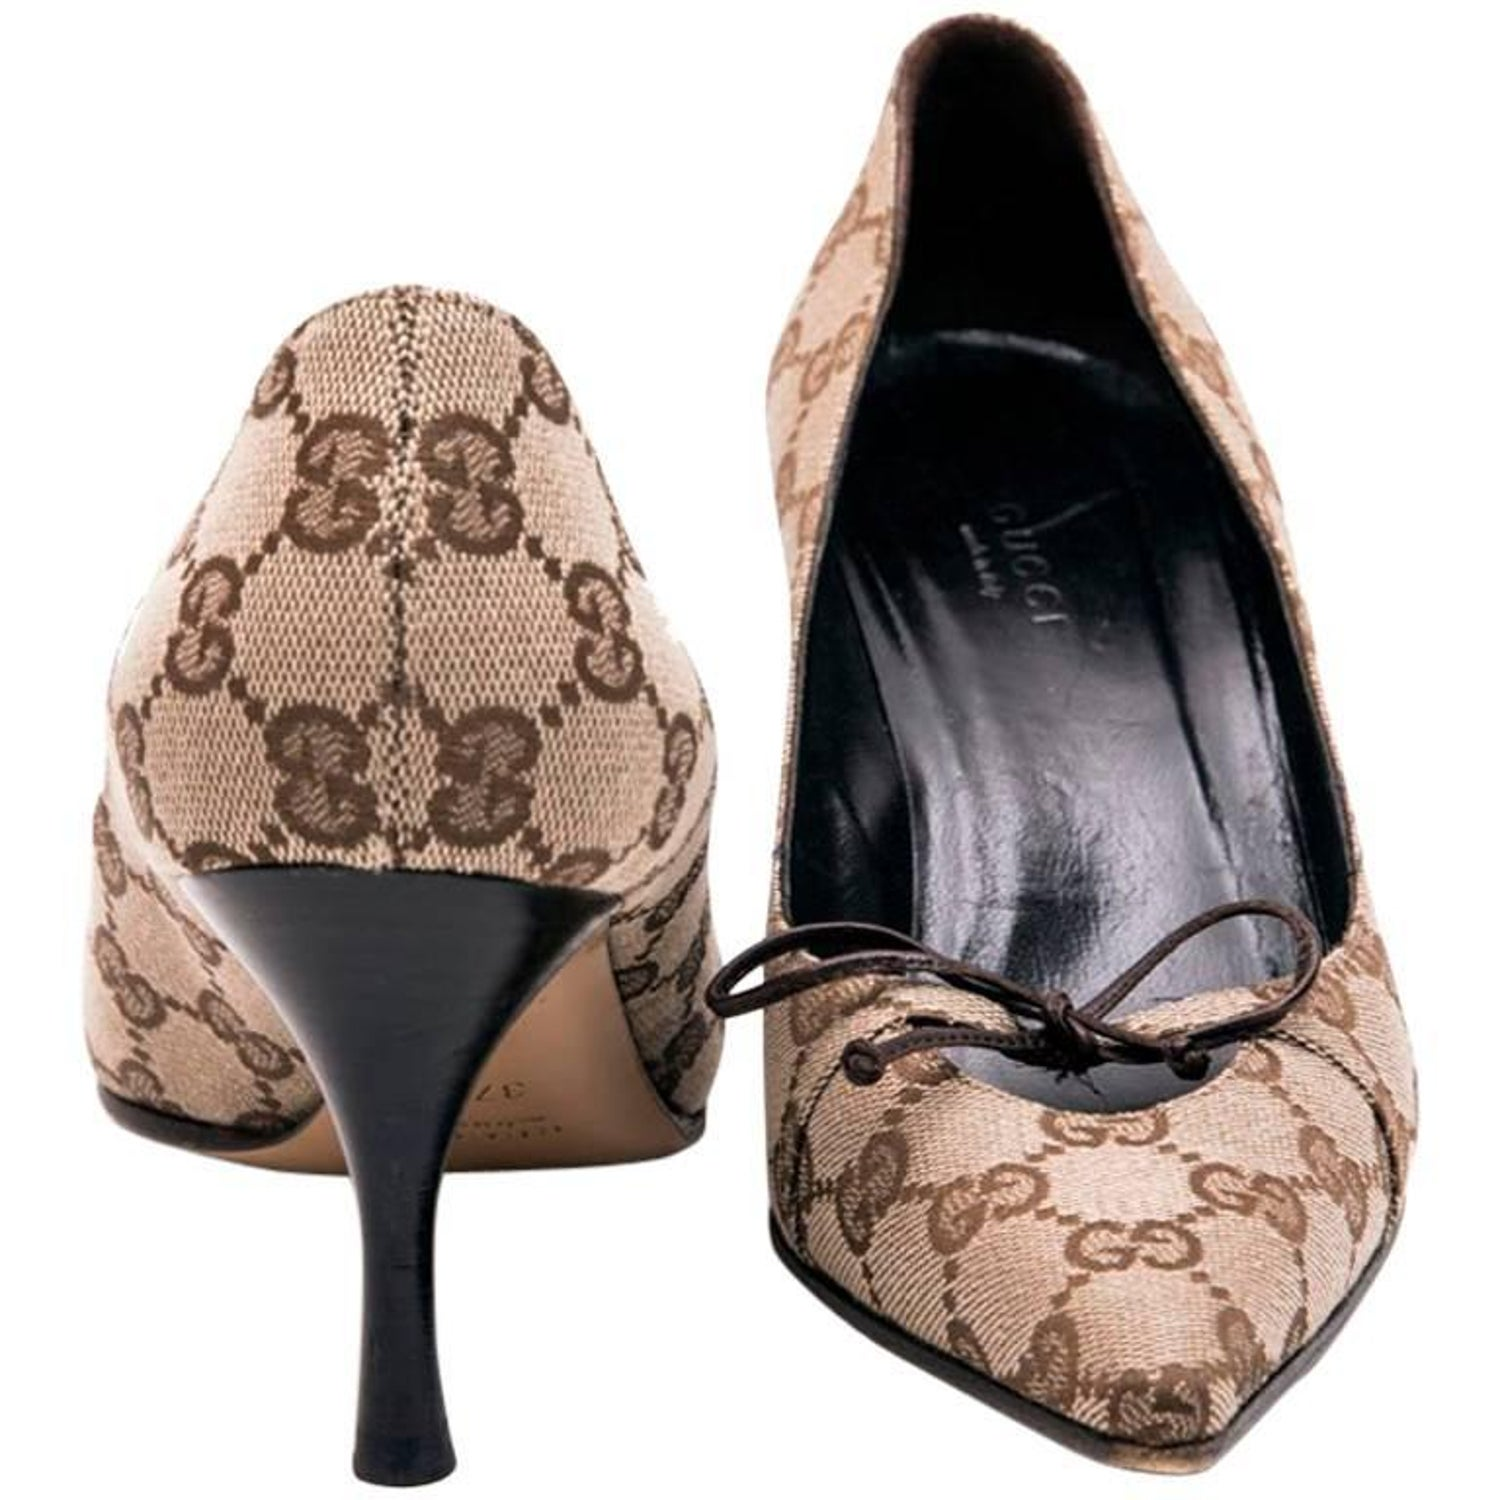 16cad1639 GUCCI High Heels Size 37FR in Brown Monogram Pattern Canvas at 1stdibs